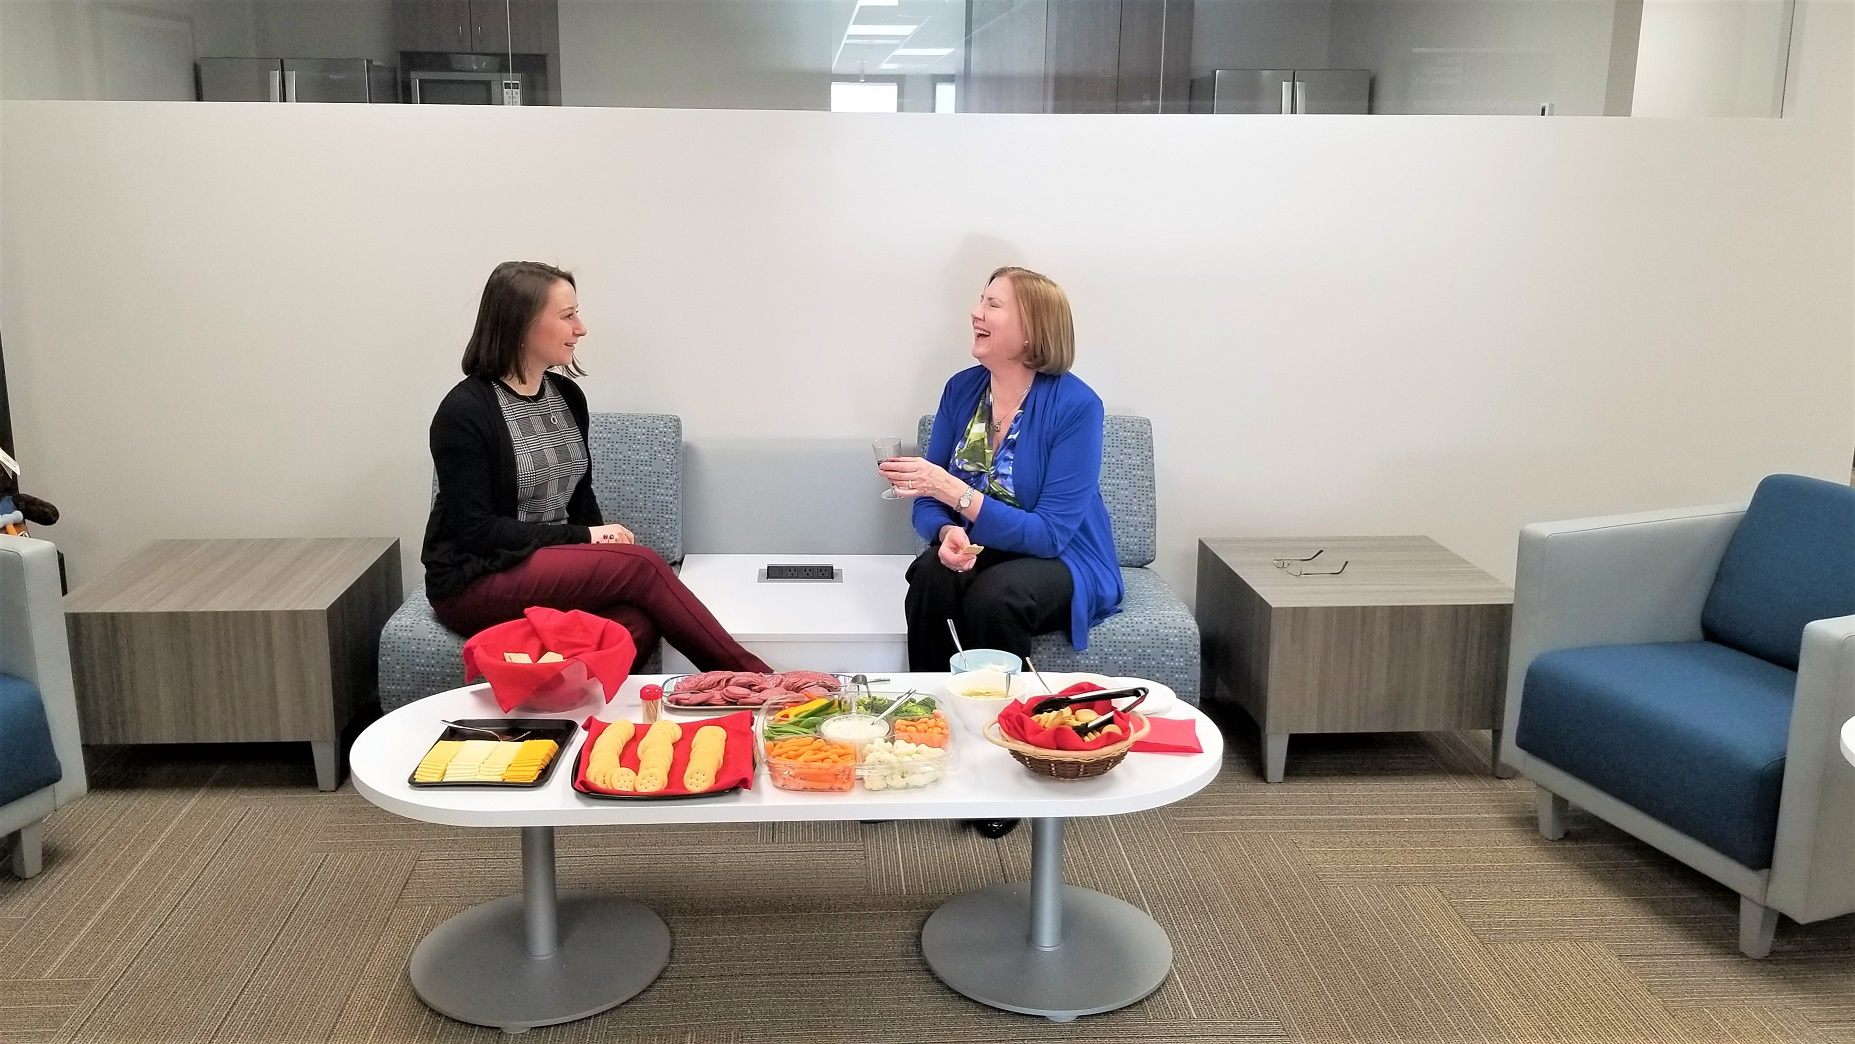 Dawn Benchelt and Anna Kuta enjoy the new IMC updated community space. Renovations were completed to the team's space early this year, featuring a new kitchen, open-floor plan, new collaboration rooms, and a new conference room.